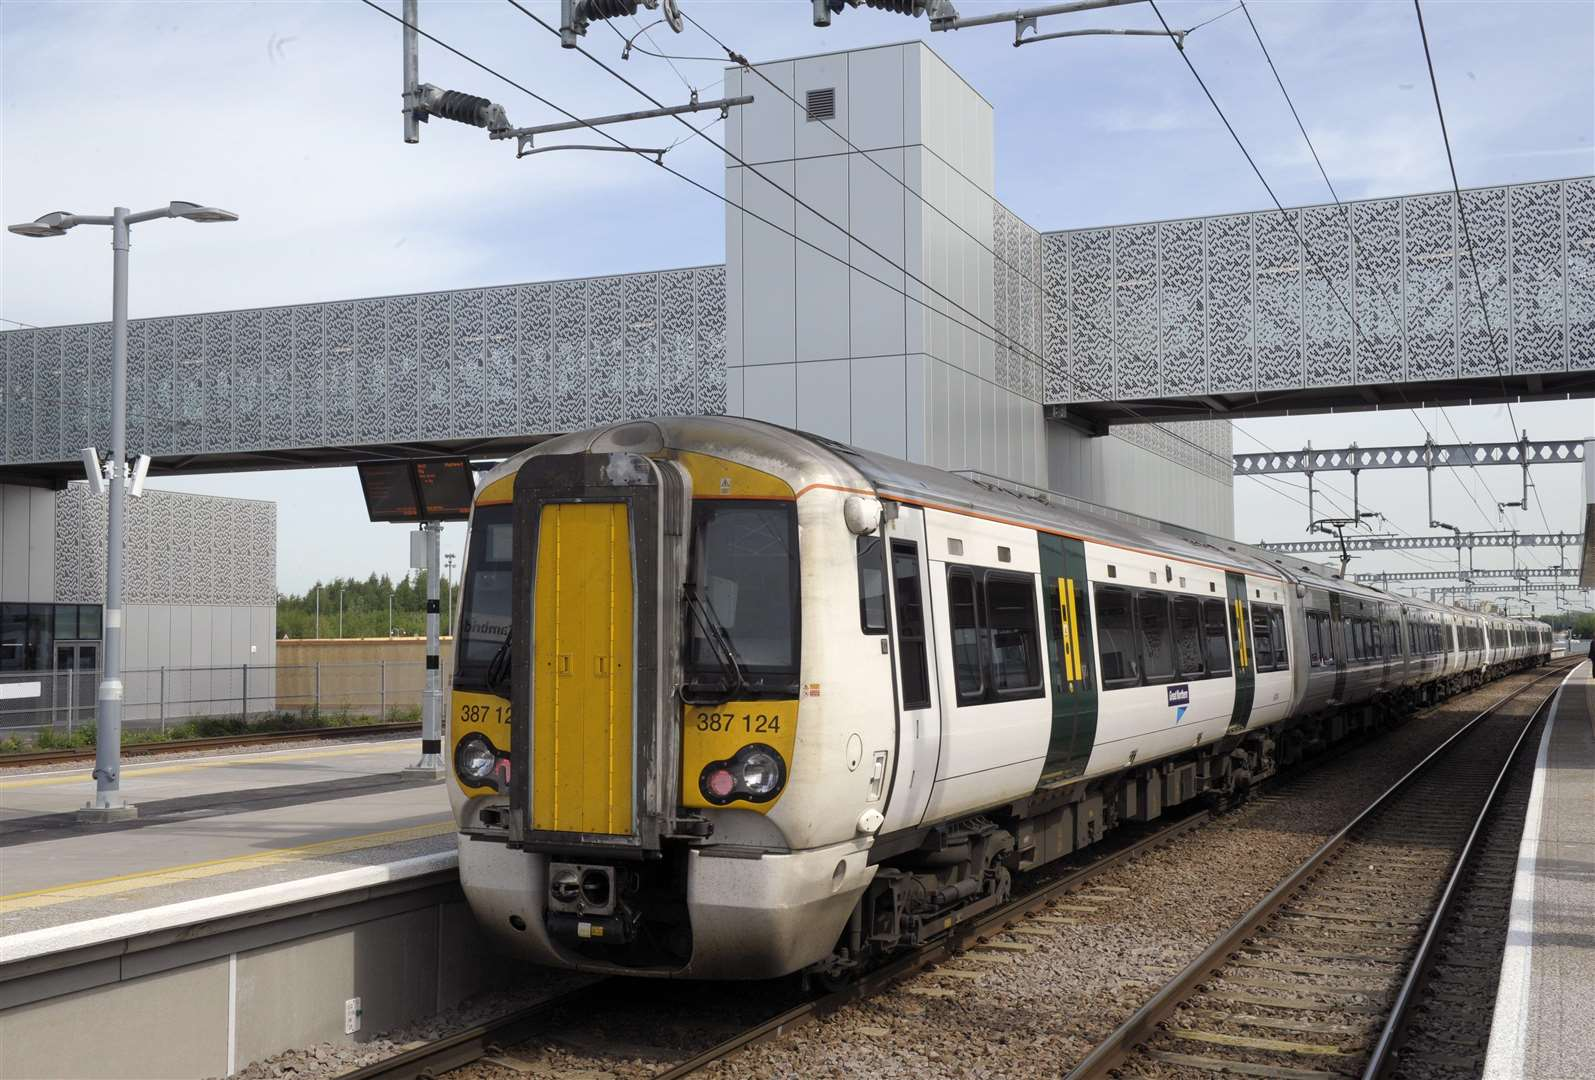 Launch of new trains and opening of new Cambridge North Station. (3008948)